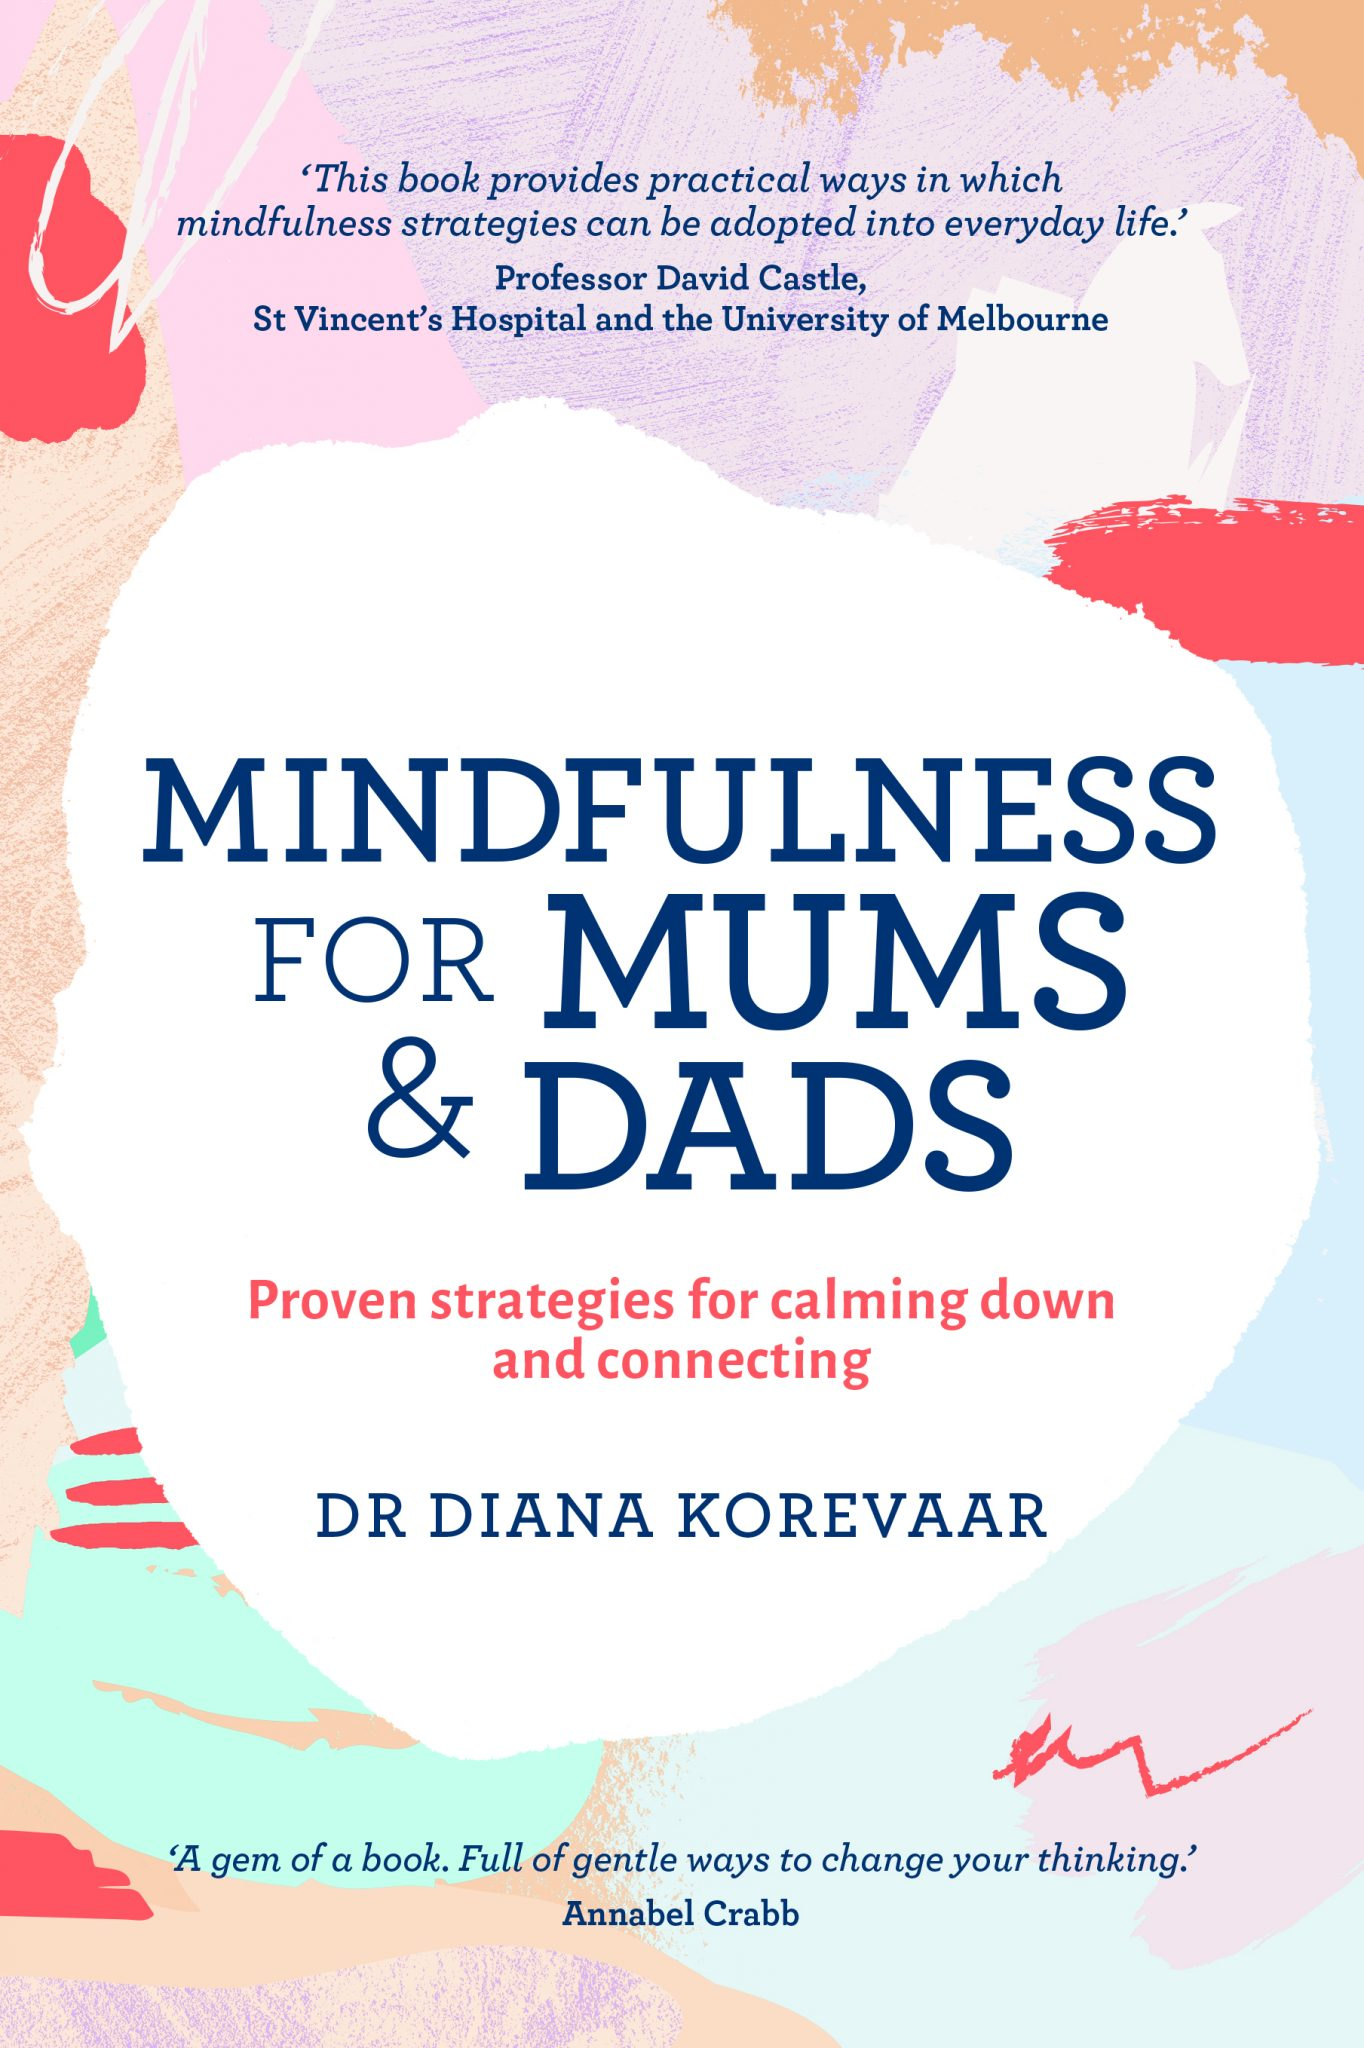 Mindfulness for parents: proven strategies for calming down and connecting with our kids - a book review 6